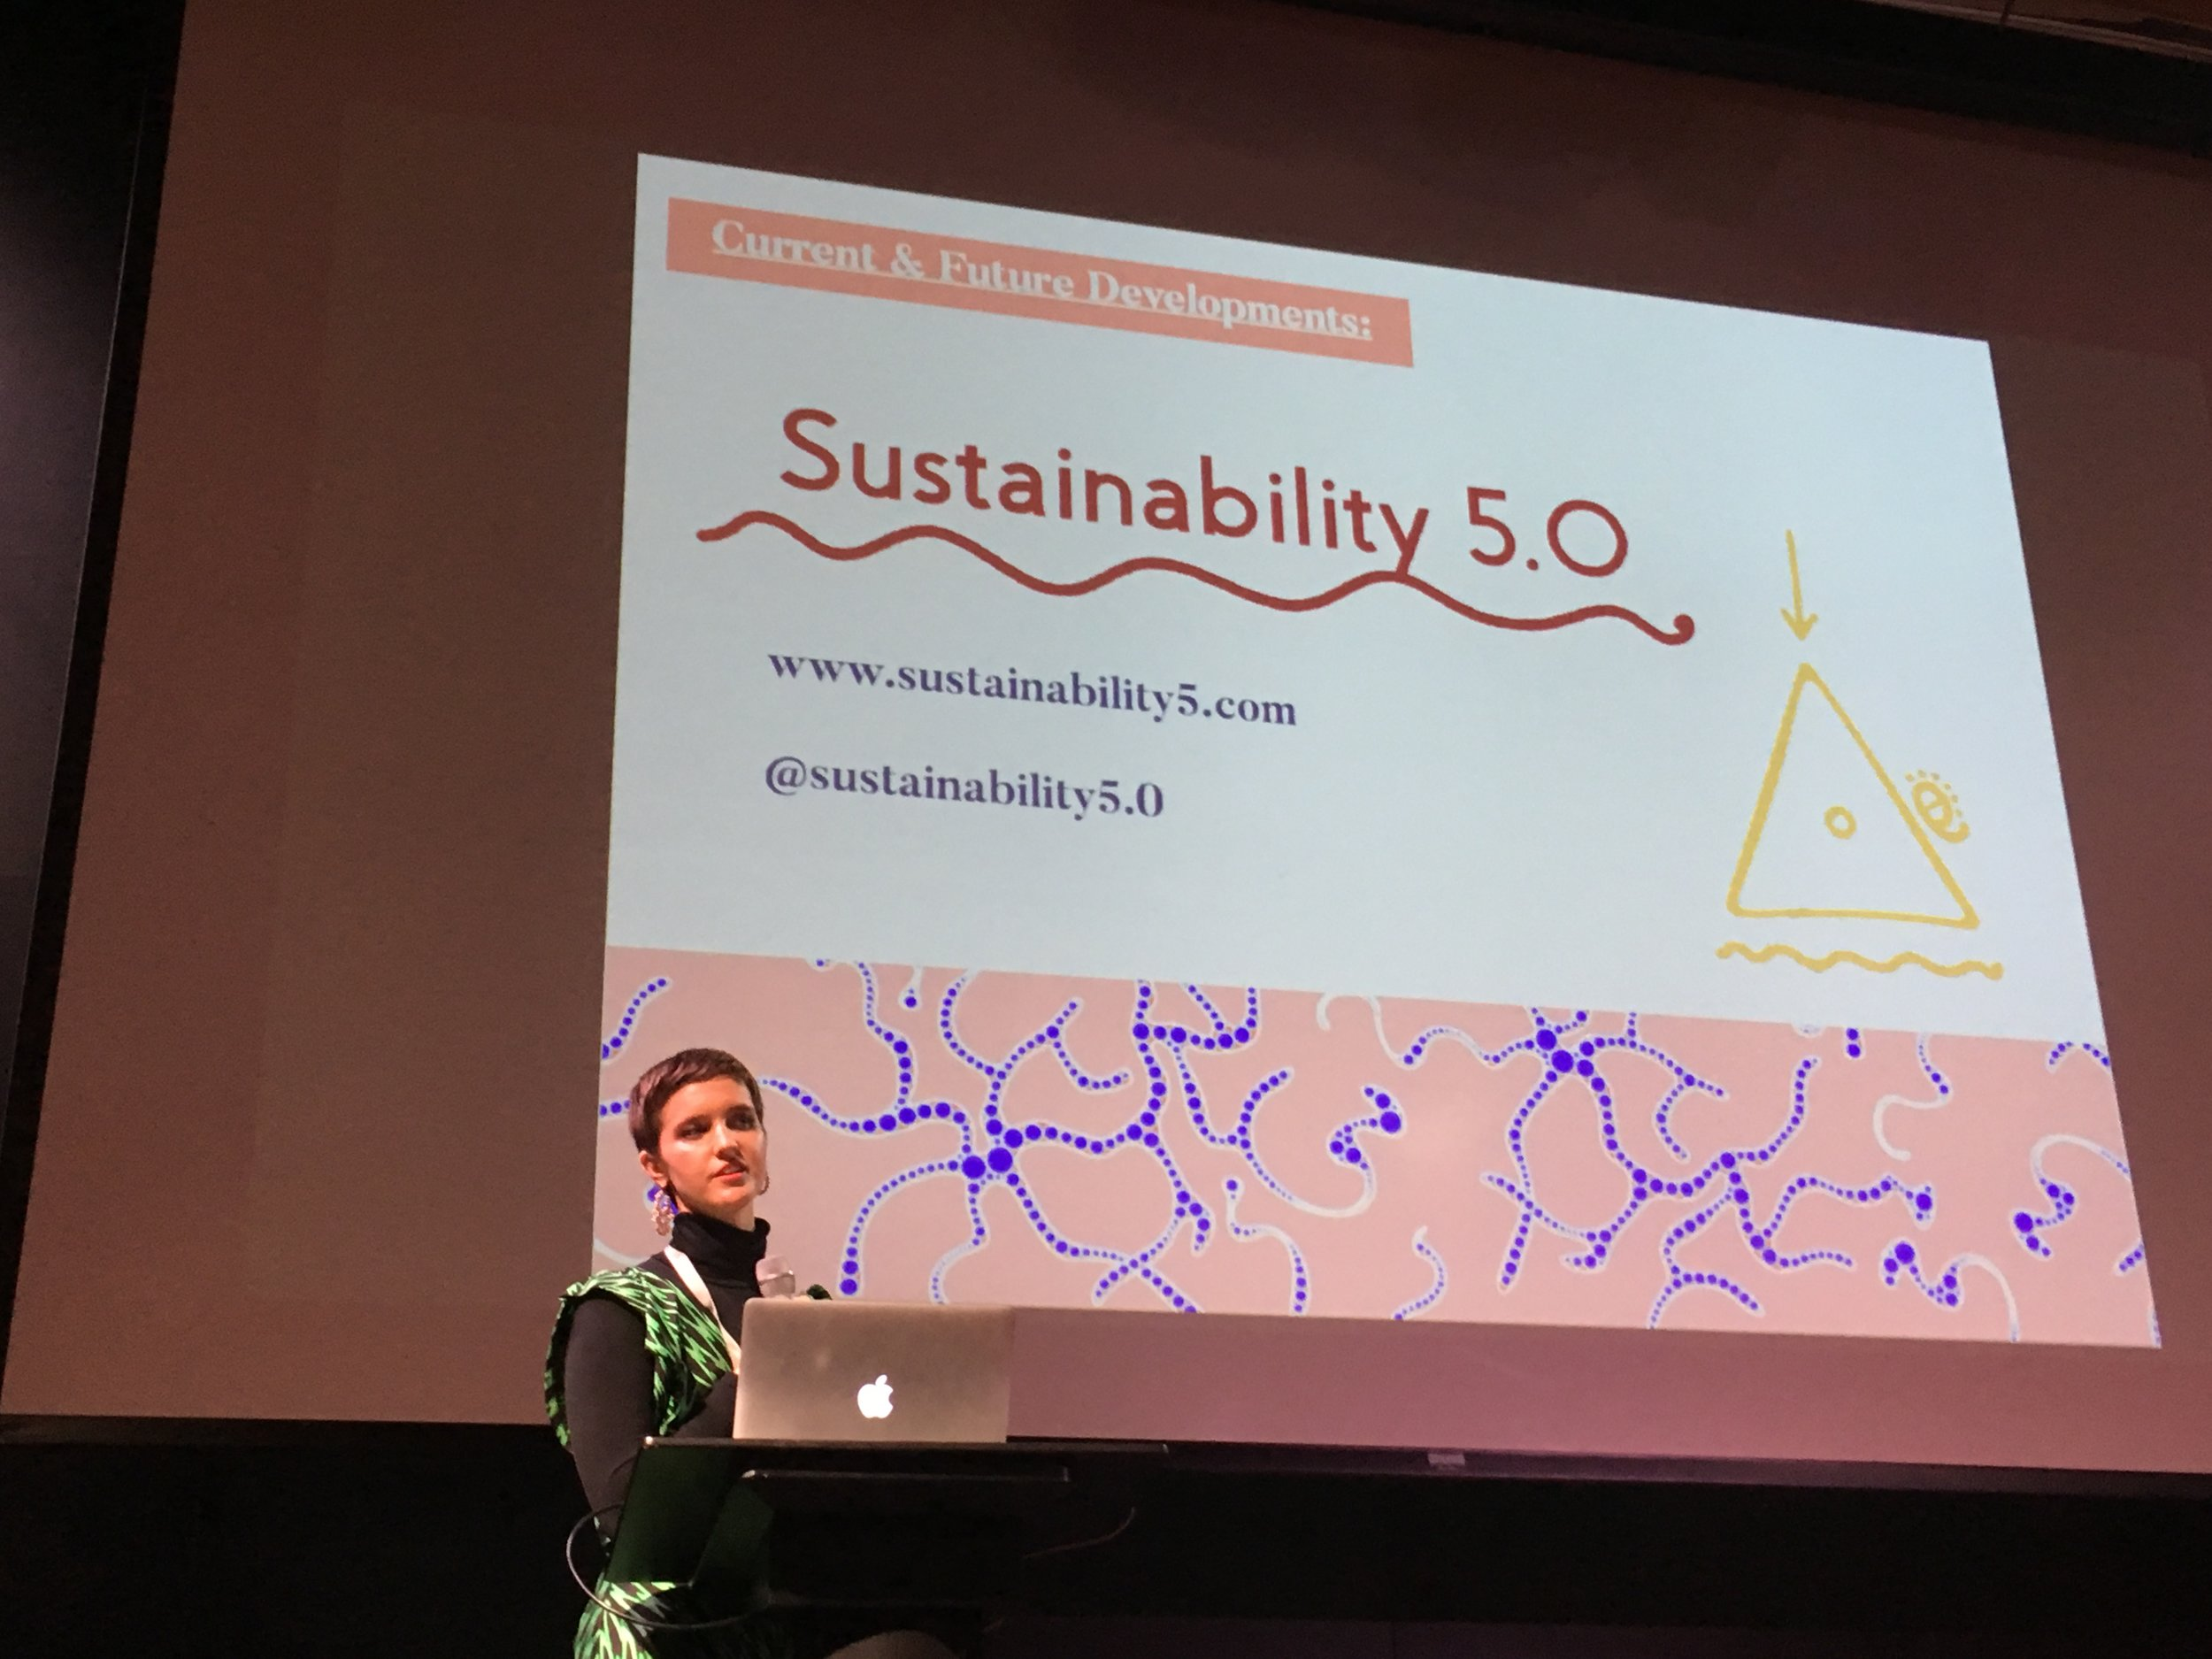 Presenting my paper on 'Fashion & Spirituality' -  'How can spirituality serve as an underlying framework for creating sustainable fashion design futures? '